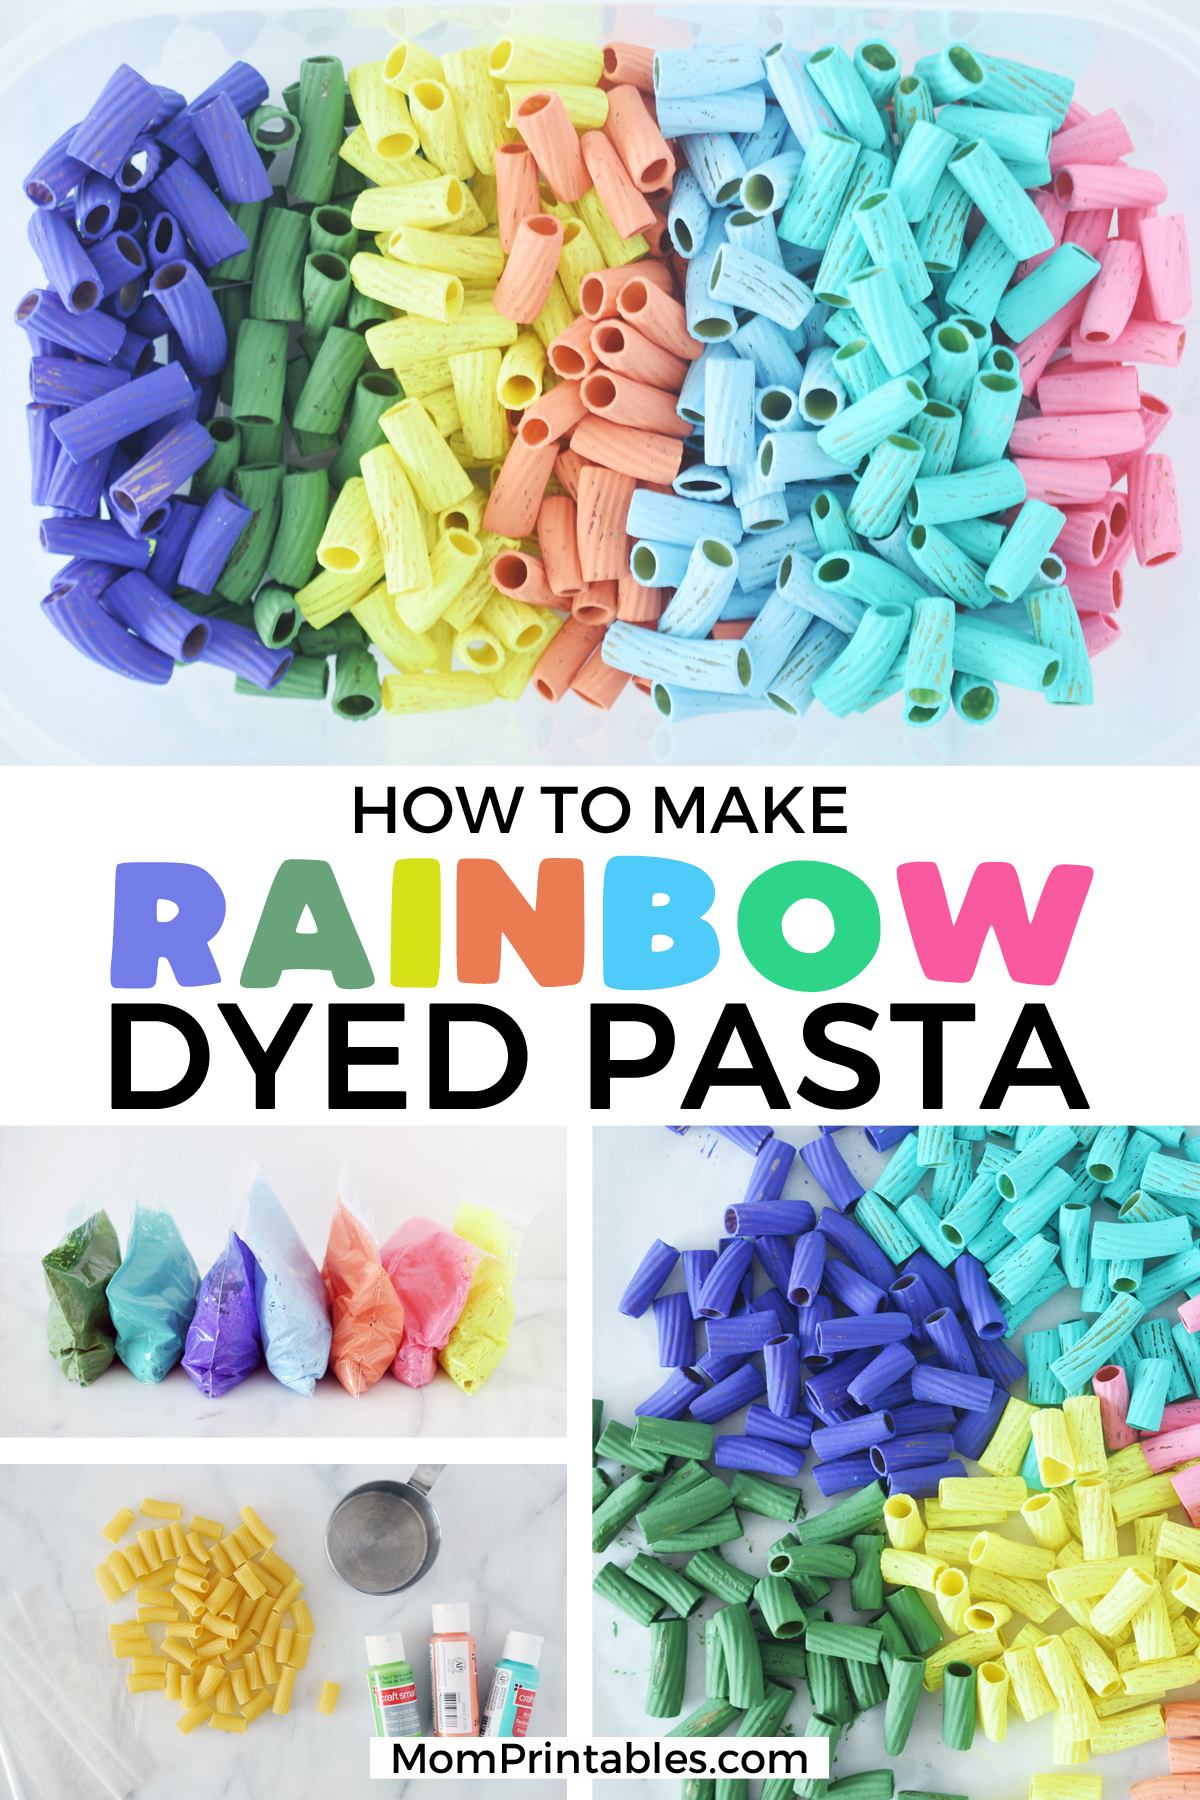 Dyed Pasta Crafts. How To Dye Pasta Noodles For Crafts. | for kids | dyes | fun | fine motor | how to make | art | sensory table | projects | beads | macaroni necklace | tutorials | busy bags | ideas | colored pasta | #pastacrafts #crafts #kids #toddler #preschool #kindergarten #activities